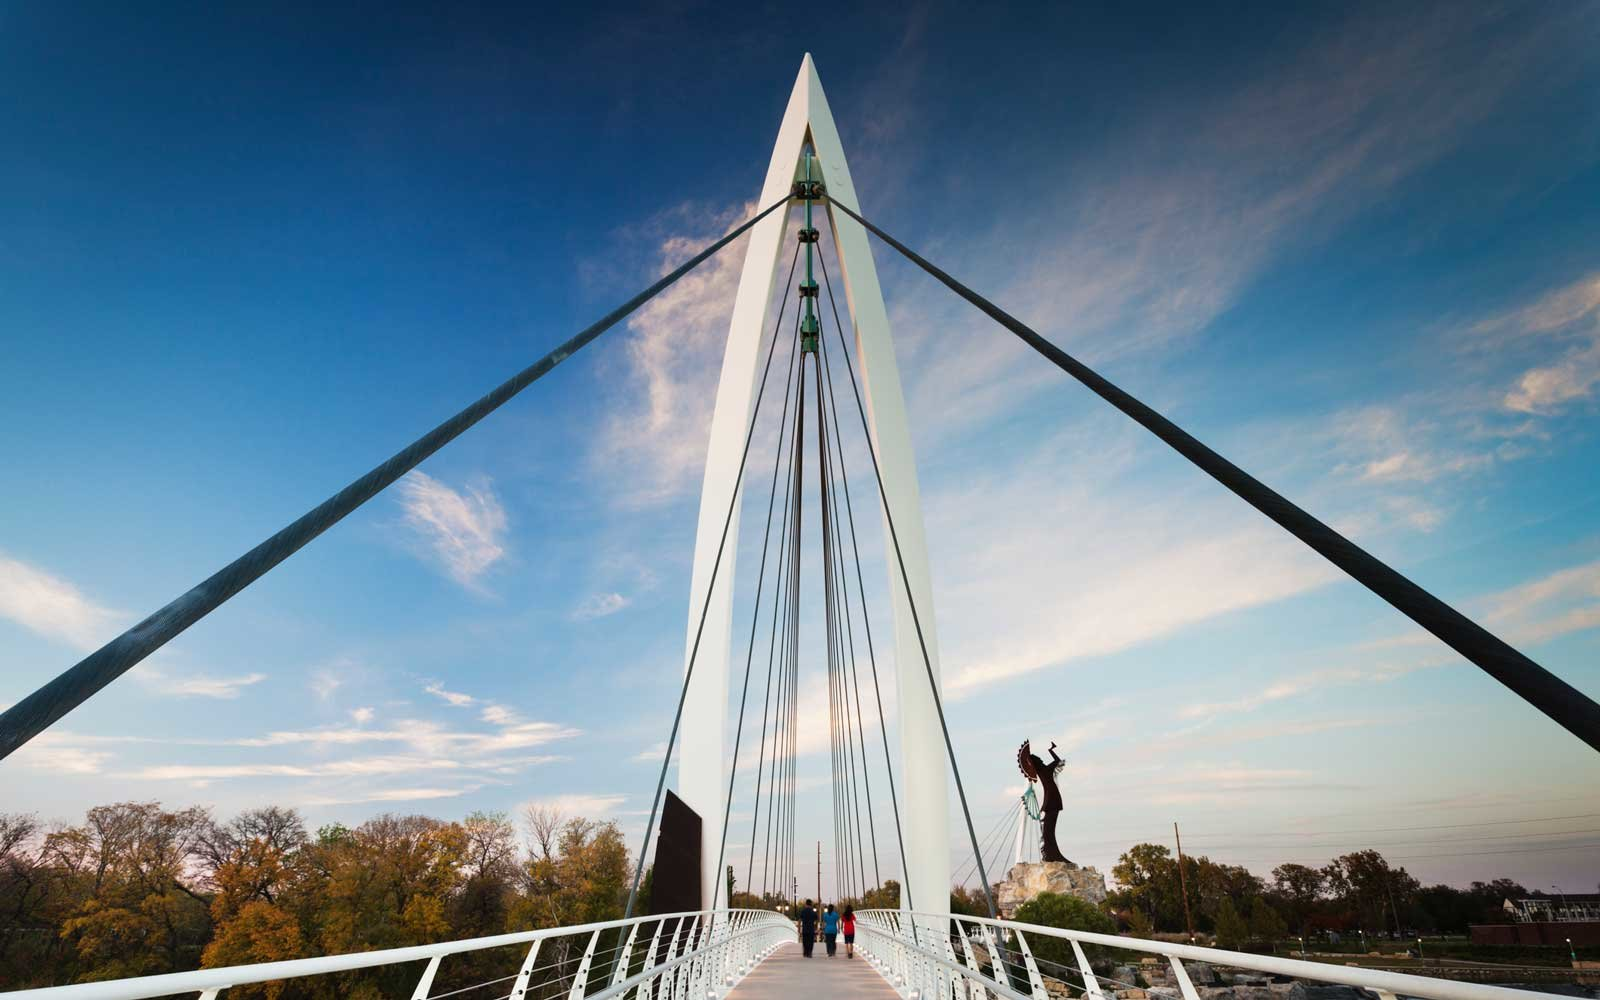 Keeper of the Plains footbridge on the Arkansas River in Wichita, Kansas